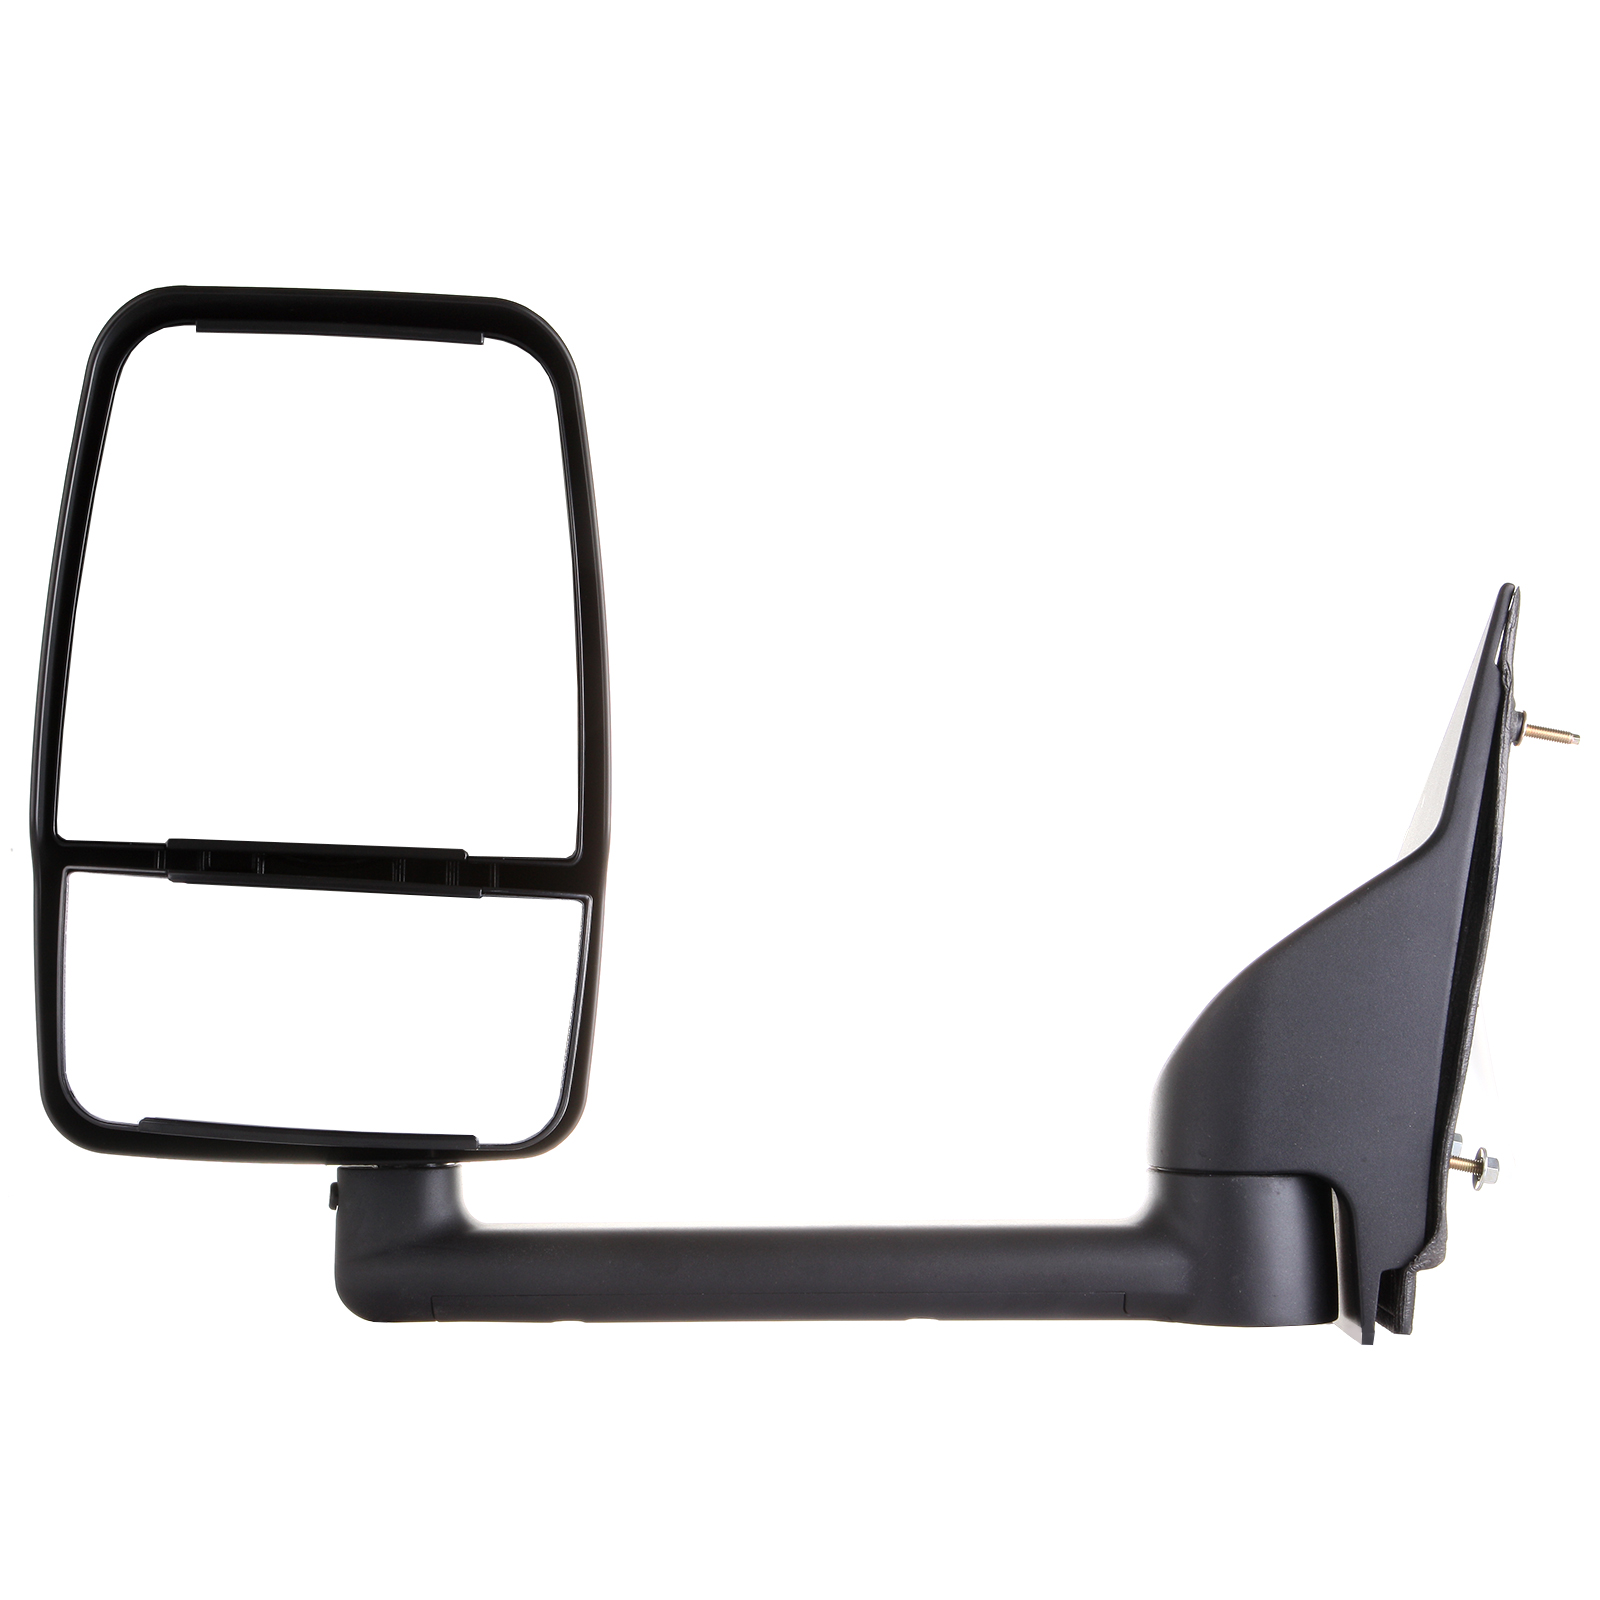 Eccpp textured manual towing mirror left driver side for 2003 2004 2005 2006 2007 2008 2009 2010 2011 chevy express gmc savana